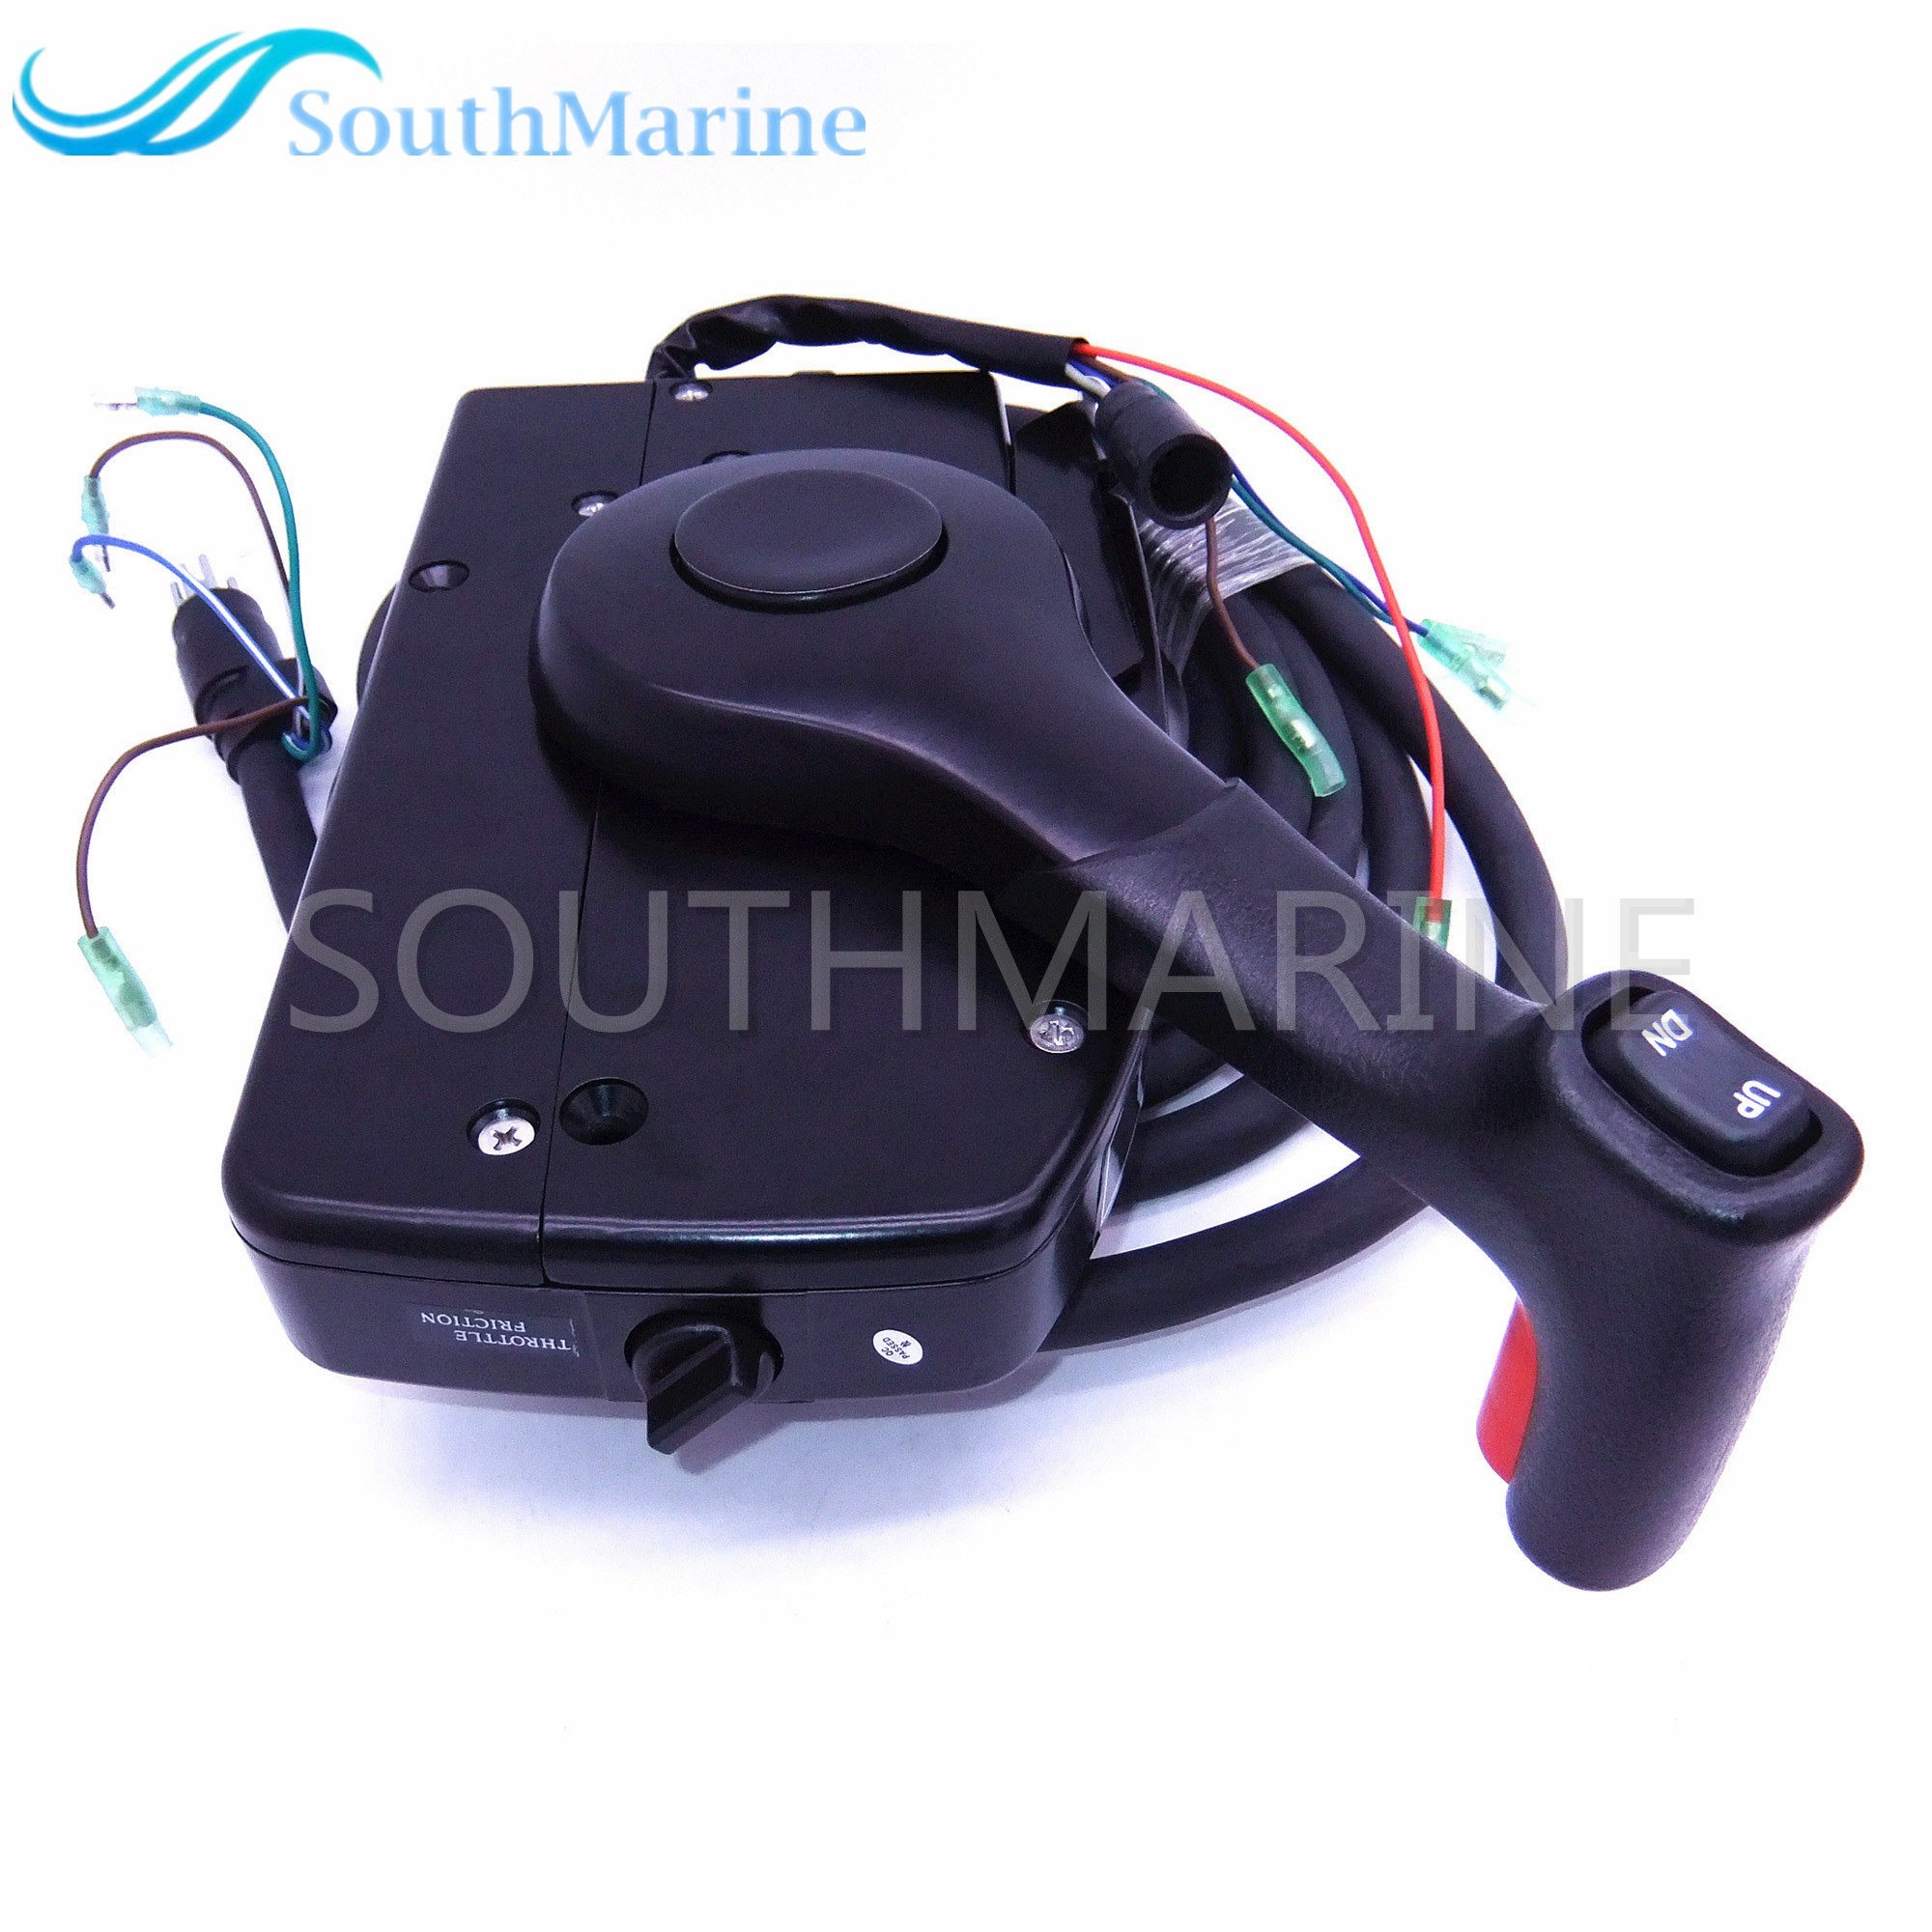 881170A15 Boat Motor Side Mount Remote Control Box With 8 Pin for Mercury Outboard Engine PT Left Side цена